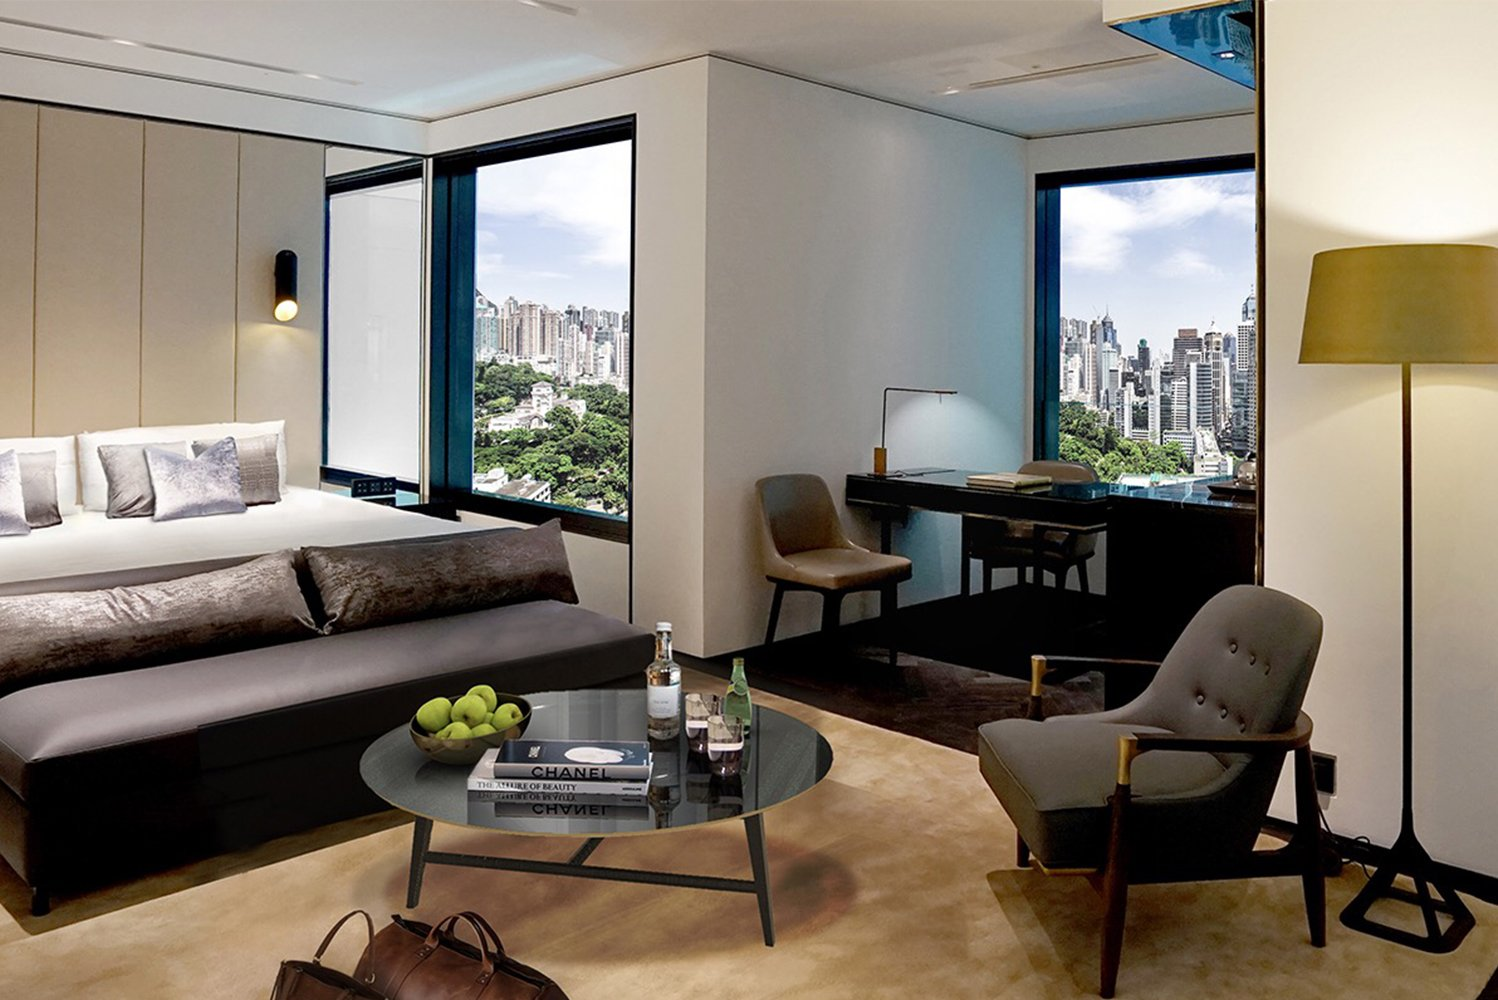 The Murray, Hong Kong, a Niccolo Hotel opened on Cotton Tree Drive in Central, near the Bank of China Tower, the American embassy and Hong Kong Park.